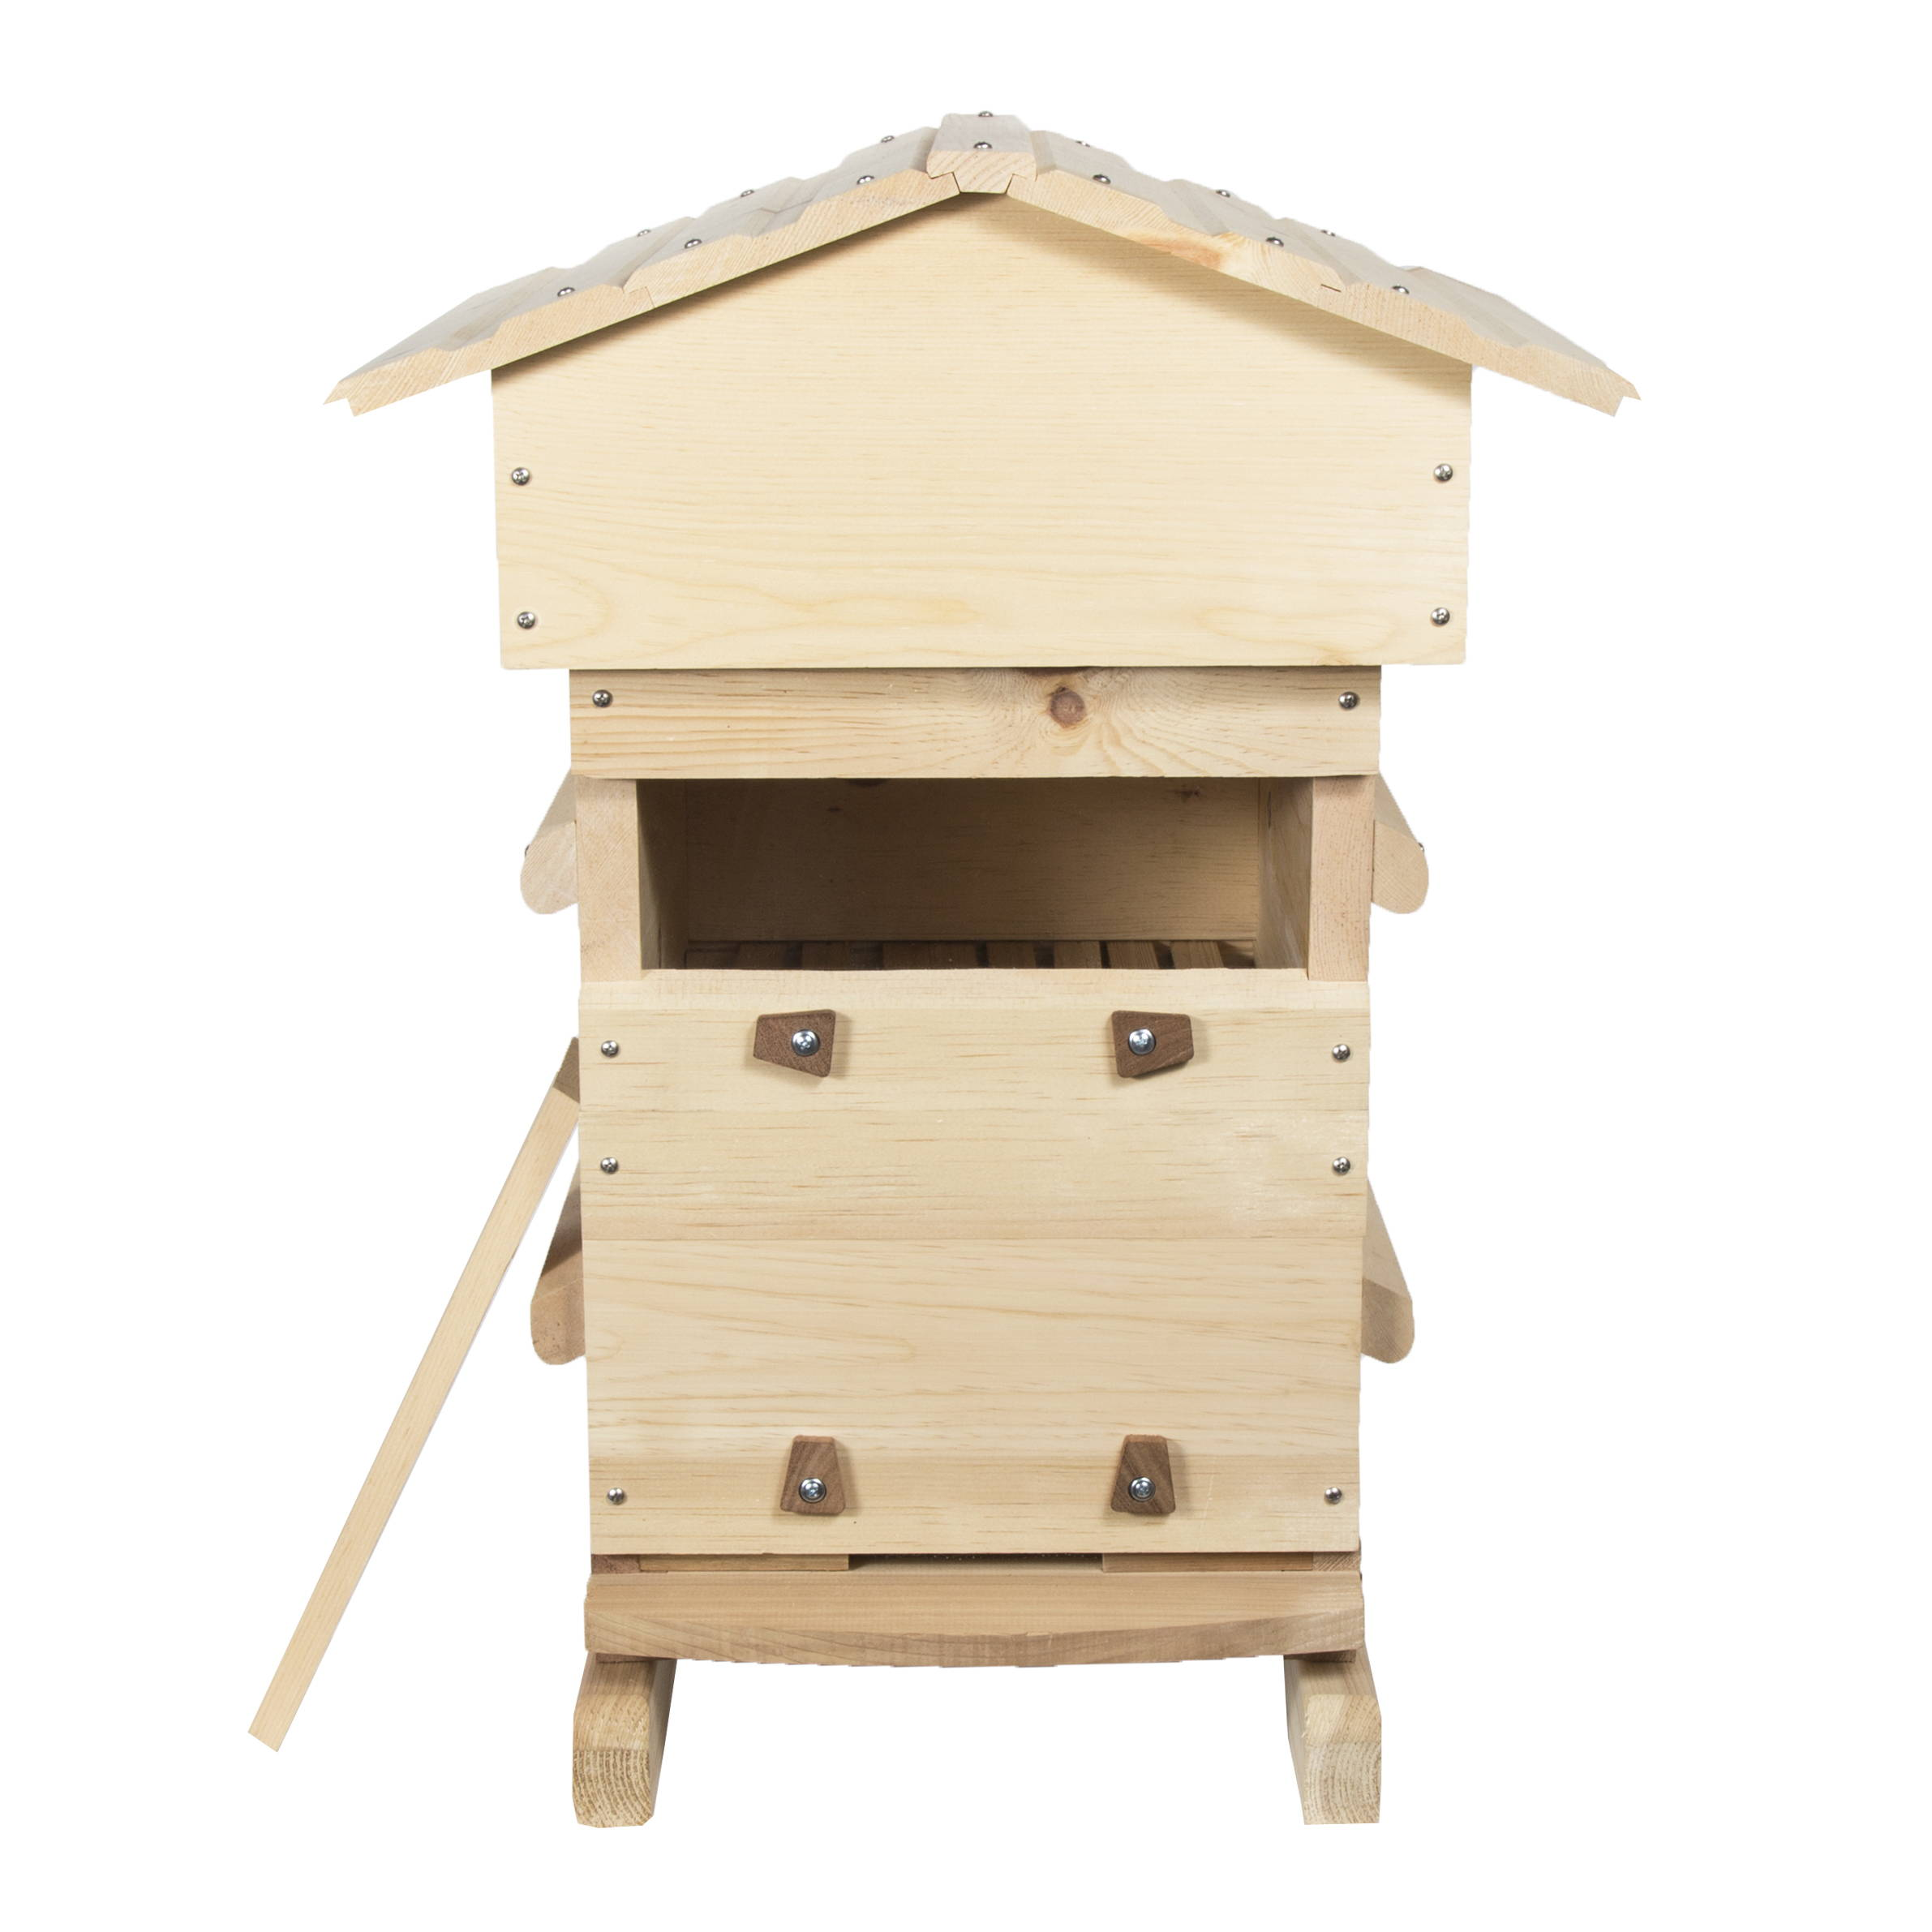 Beehive and Frame Assembly Instructions